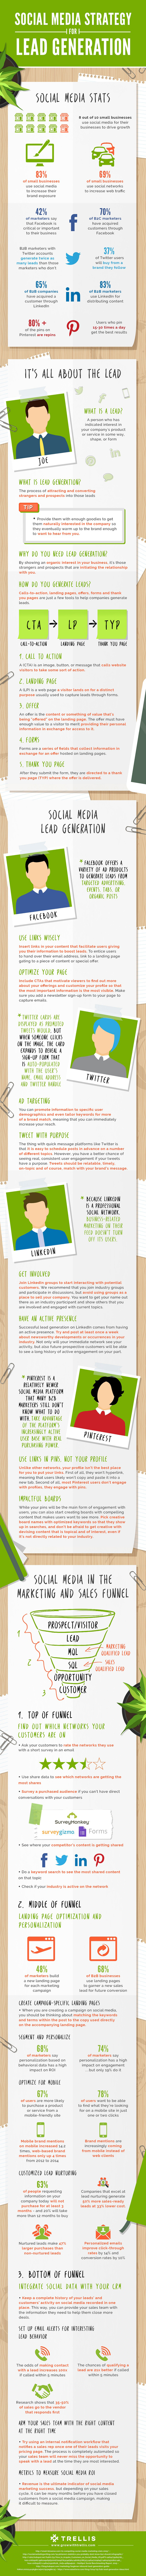 infographic outlines a range of social media lead generation stats and tips